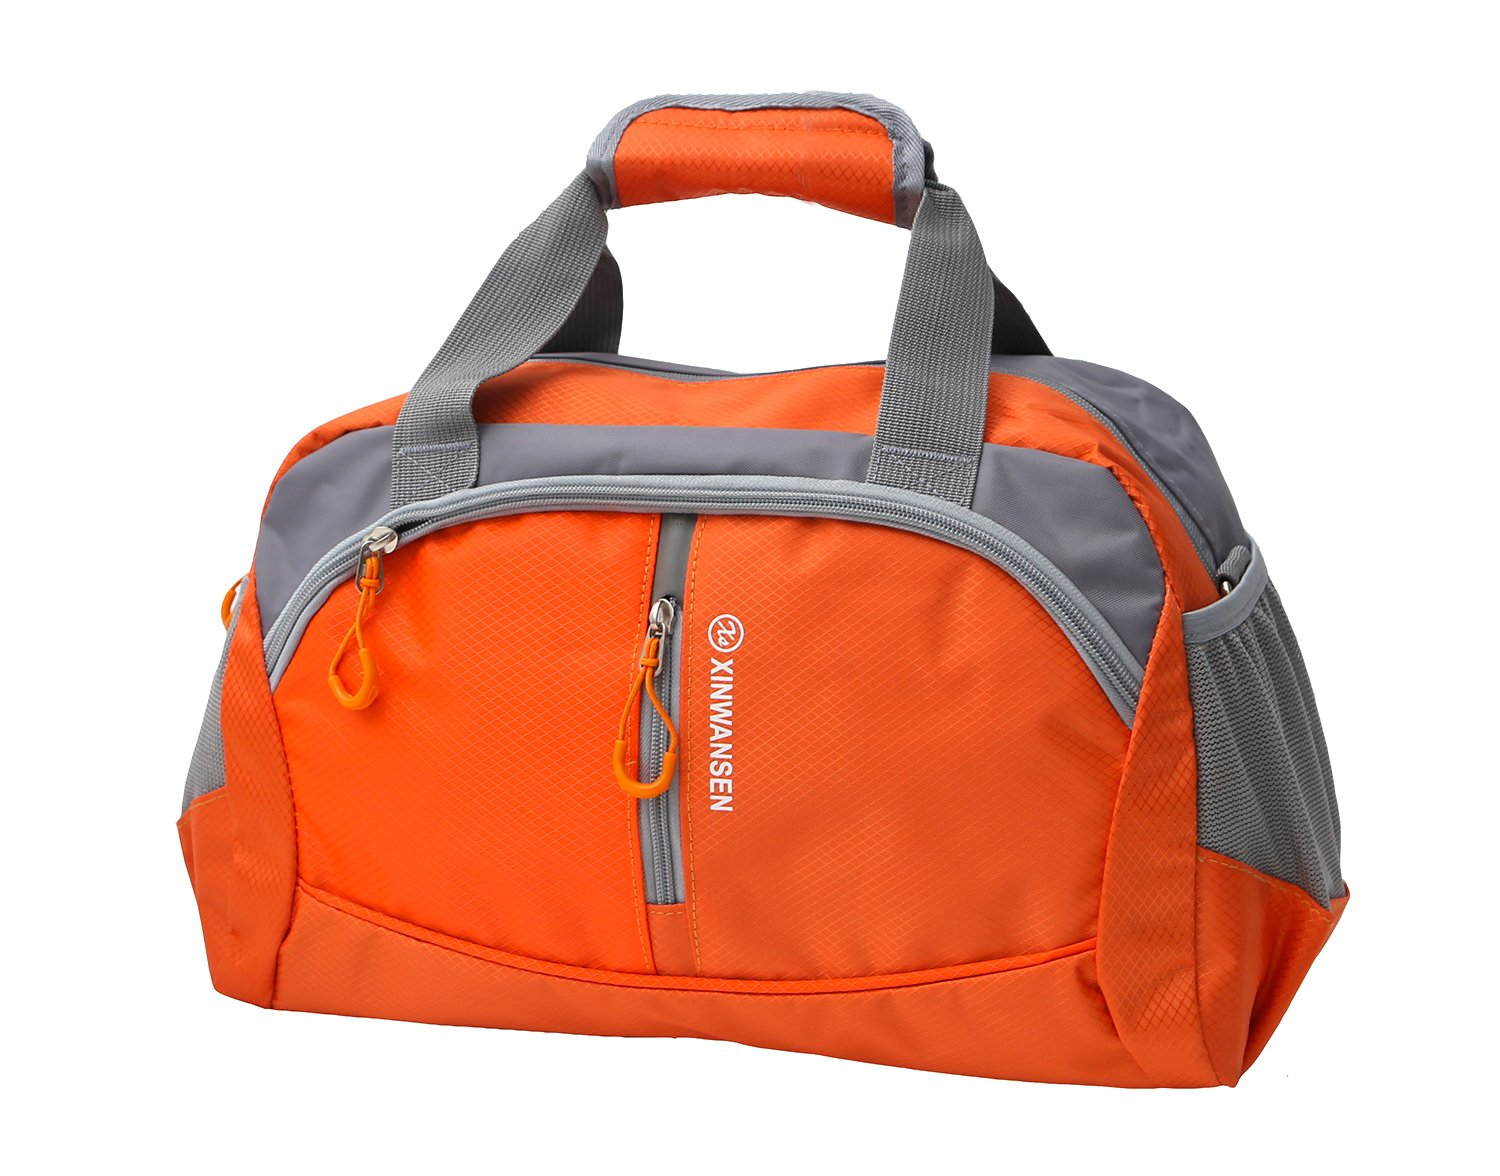 XINWANSEN 20 Litres Duffle Travel Bag Tote Carry-On Shoulder Bag For Women Men Trips Sports With Shoulder Strap